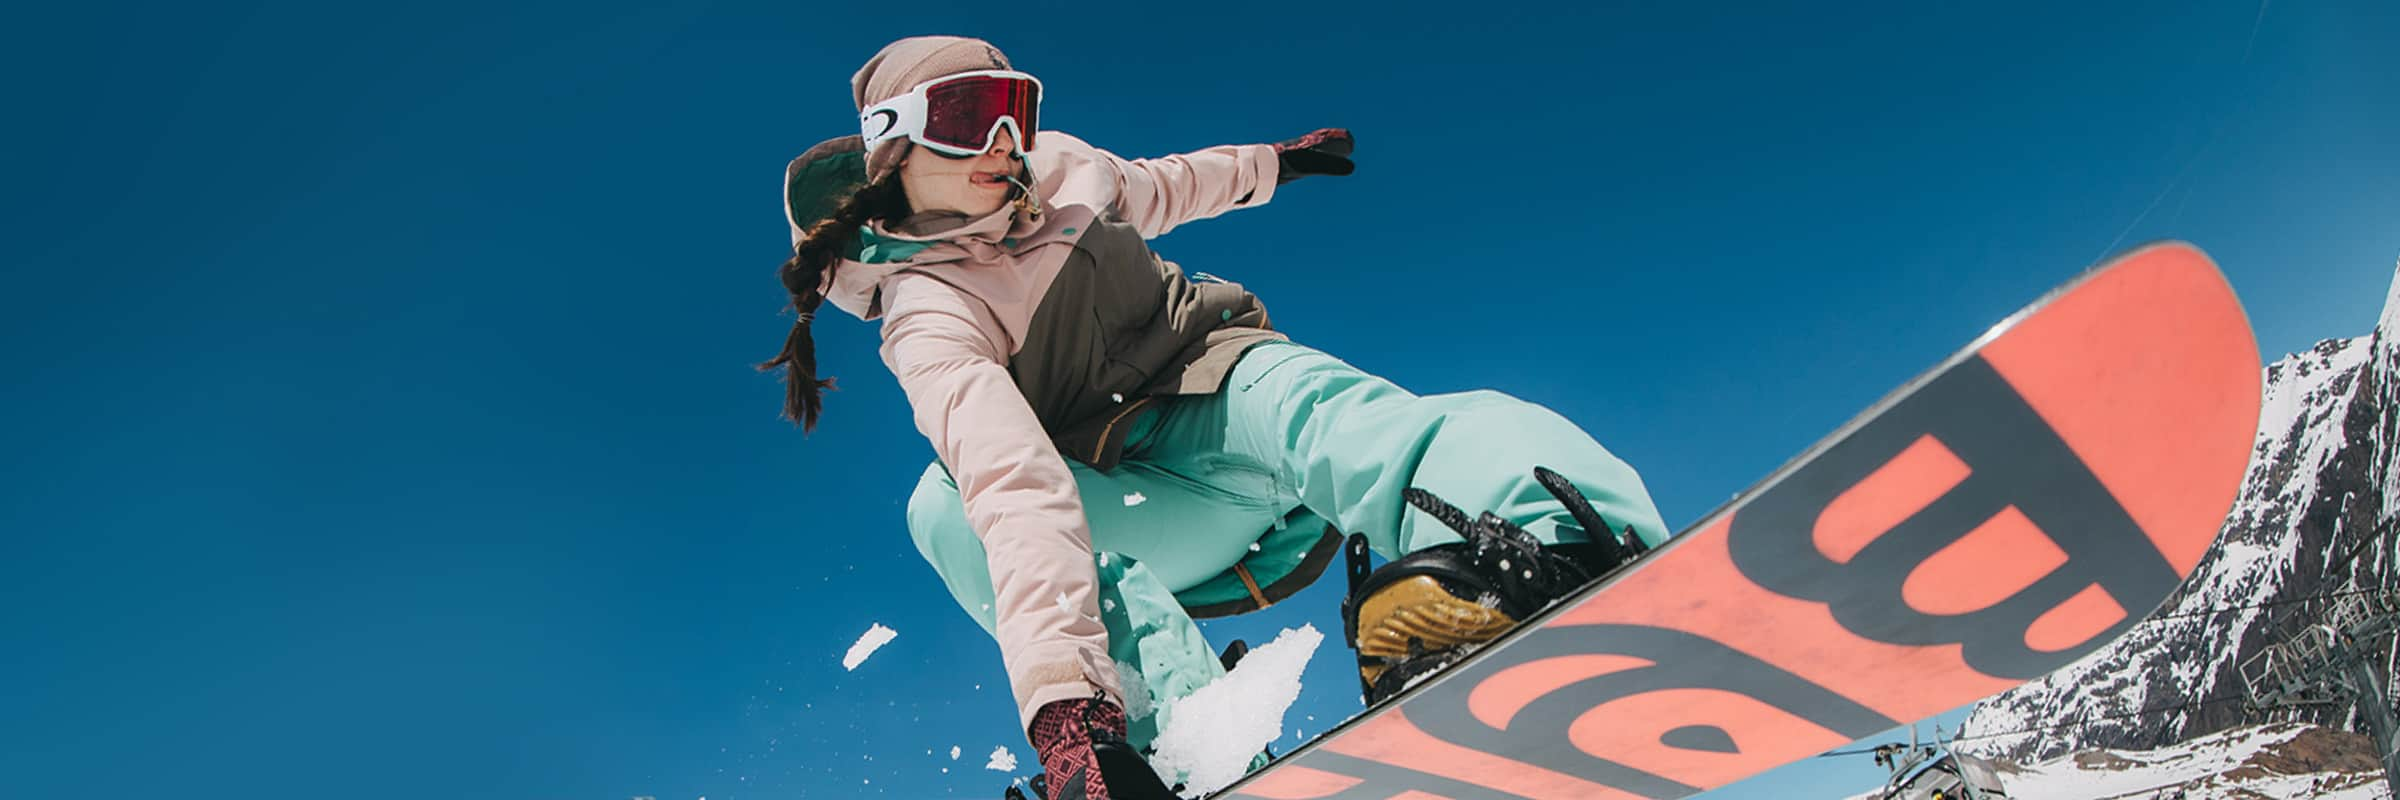 Burton, Ski & Snowboard, Winter. Burton Youth Collection: Winterwear for Kid's They're Sure to Love